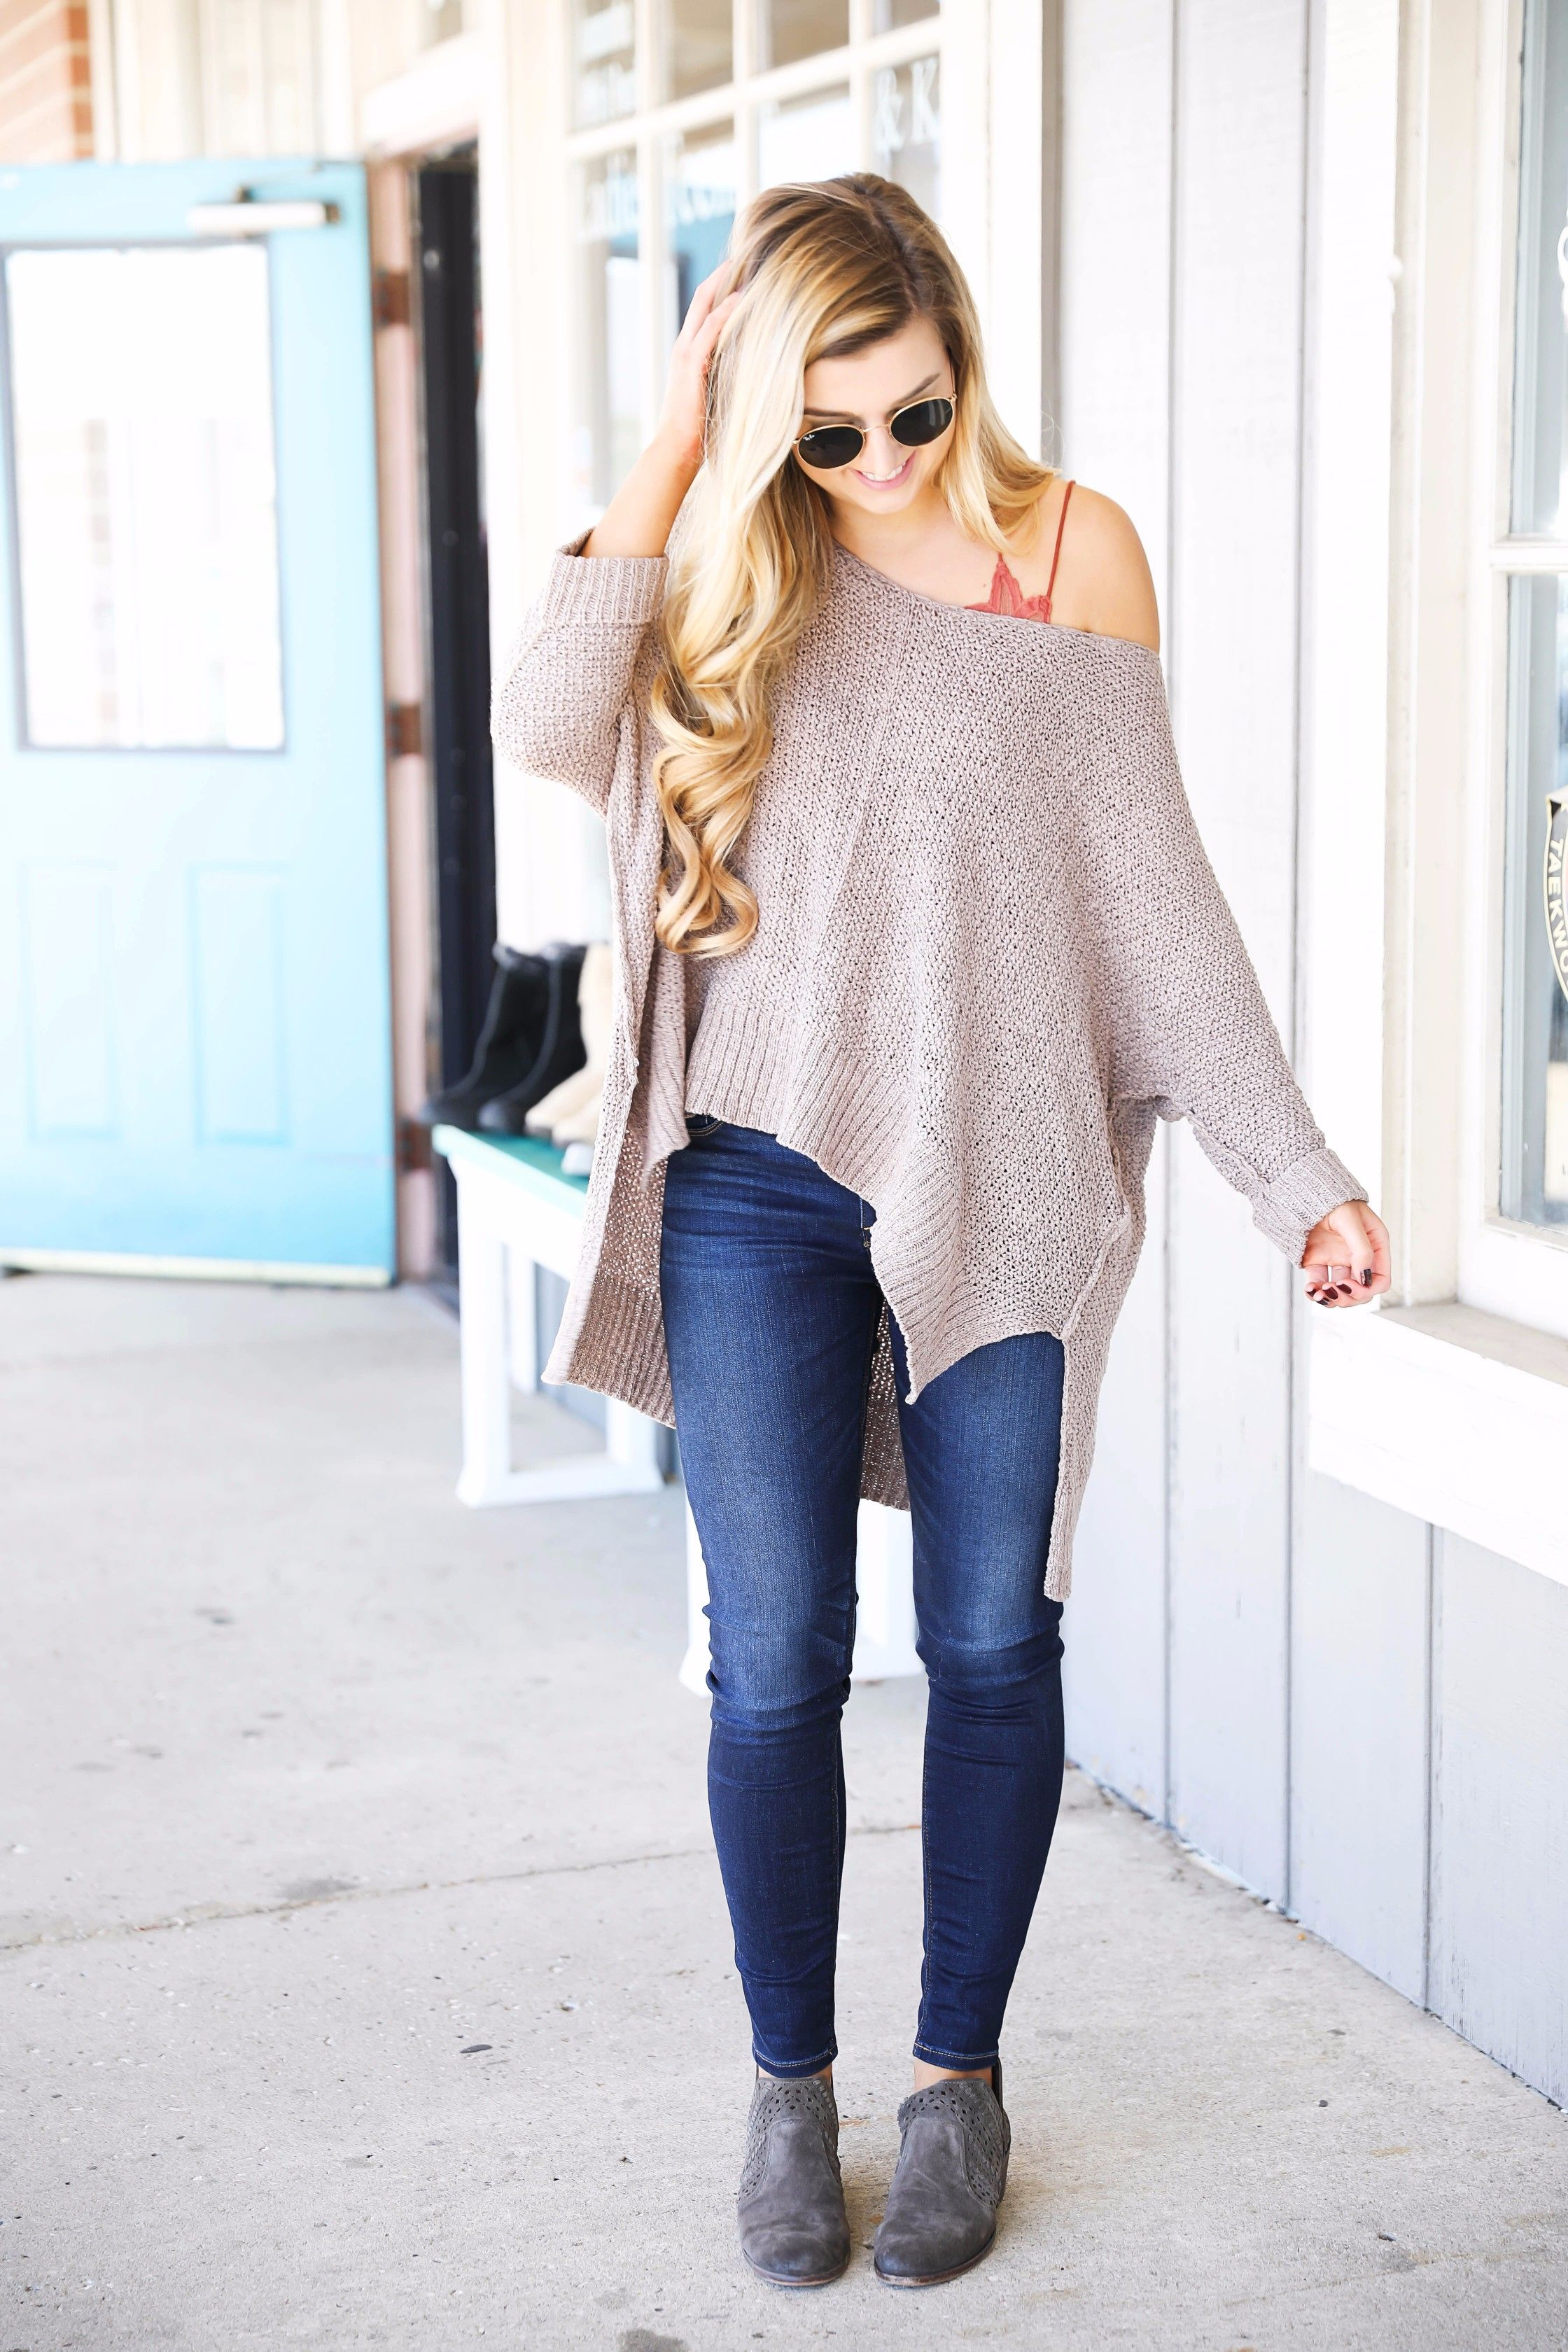 f2c93a4b3e Slouchy off the shoulder sweater with a lace free people bralette! Super  cute fall outfit for casual days or can be dressed up!